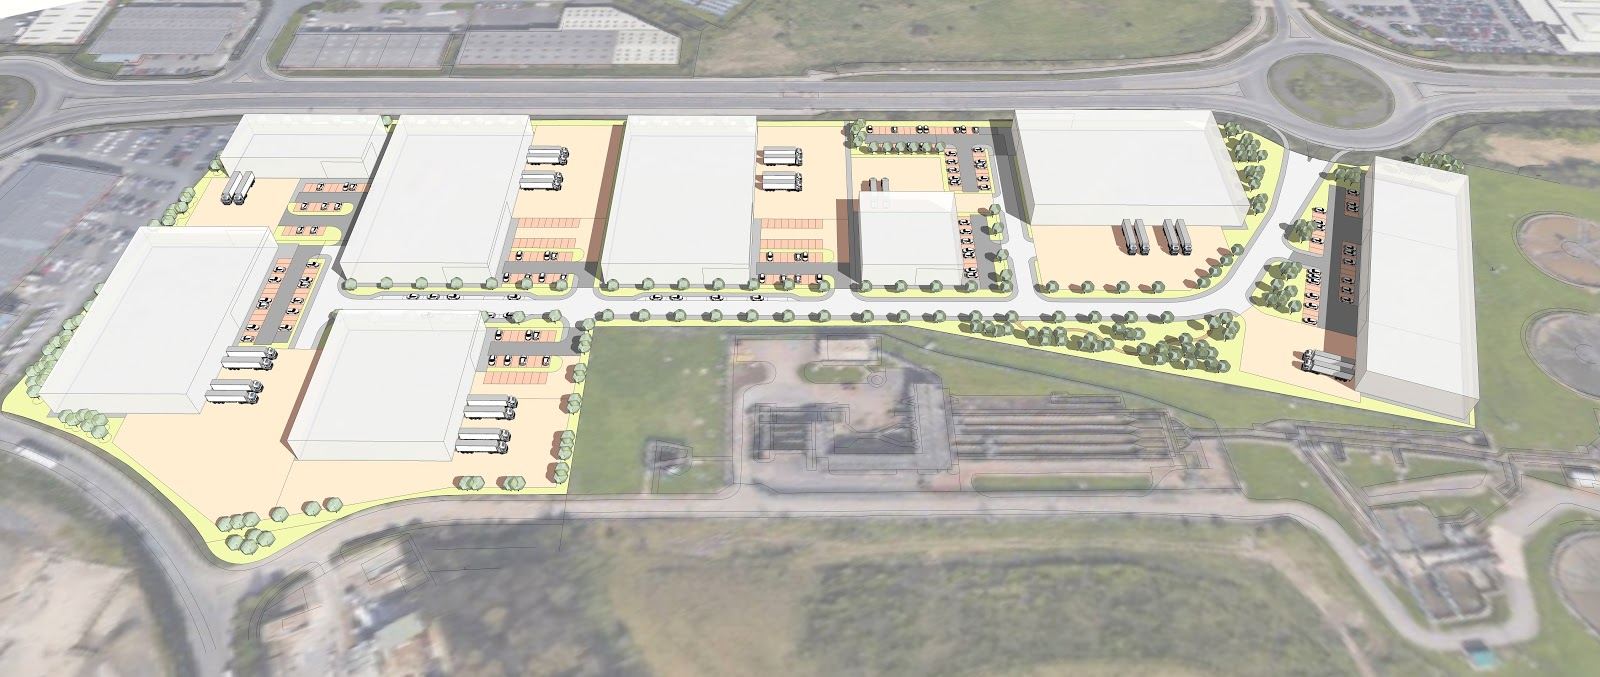 Keyland Developments Ltd Has Submitted an Outline of Planning Application